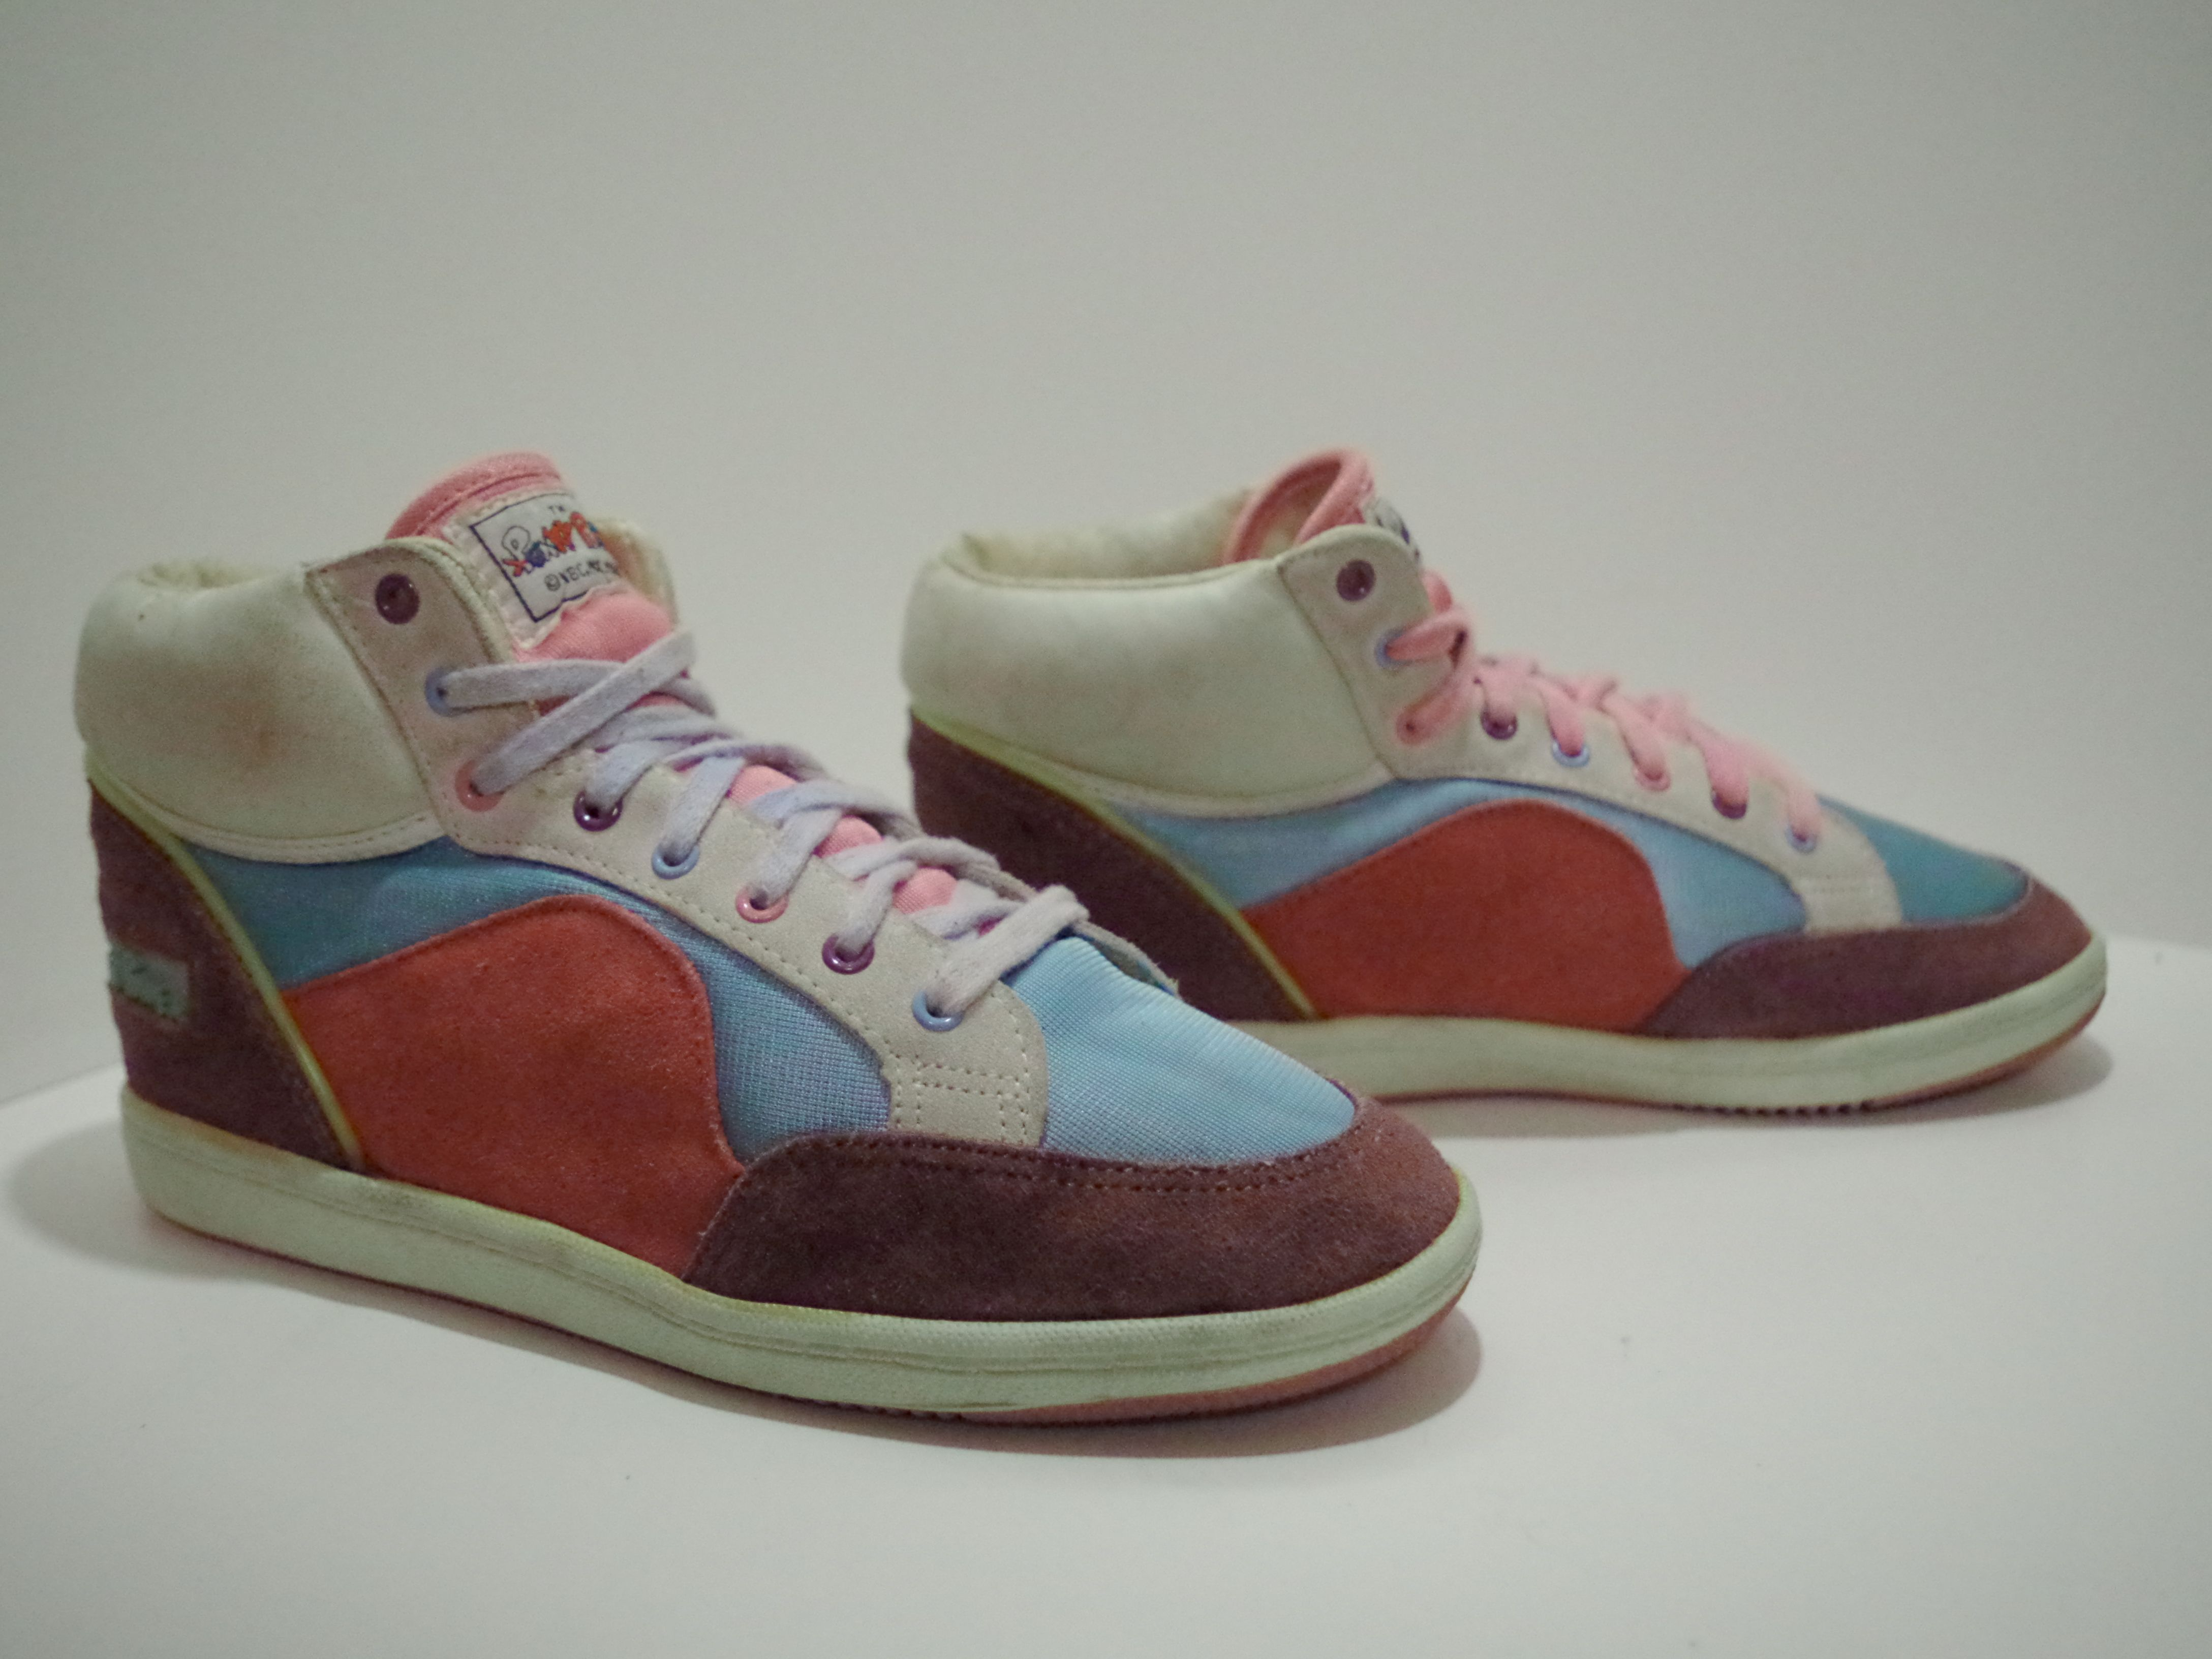 I owned a pair of these Punky Brewster Shoes 1984 Girls